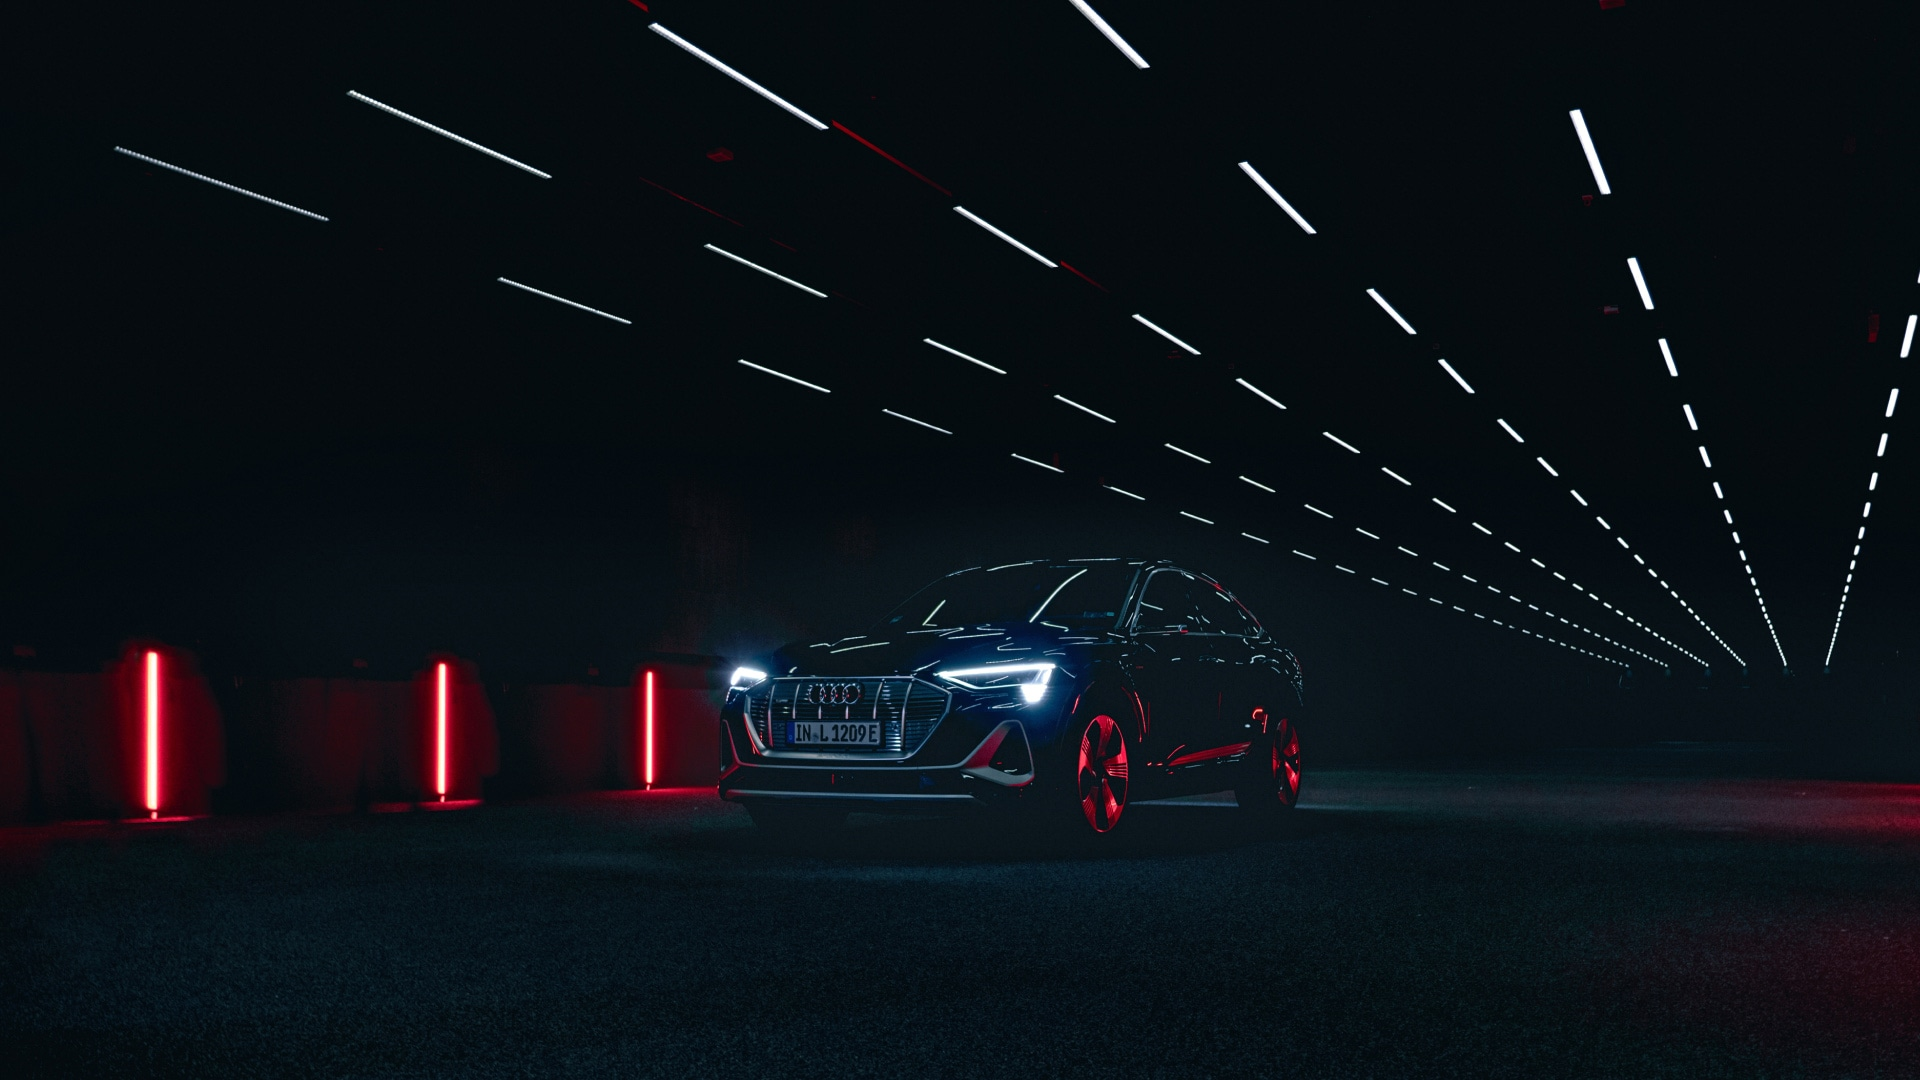 The digital matrix LED headlight can deliver cornering, city and highway lighting as versions of the low-beam light with ultra-high precision. The Audi e-tron Sportback 55 quattro with digital matrix LED headlights is shown above in the Audi light testing tunnel.